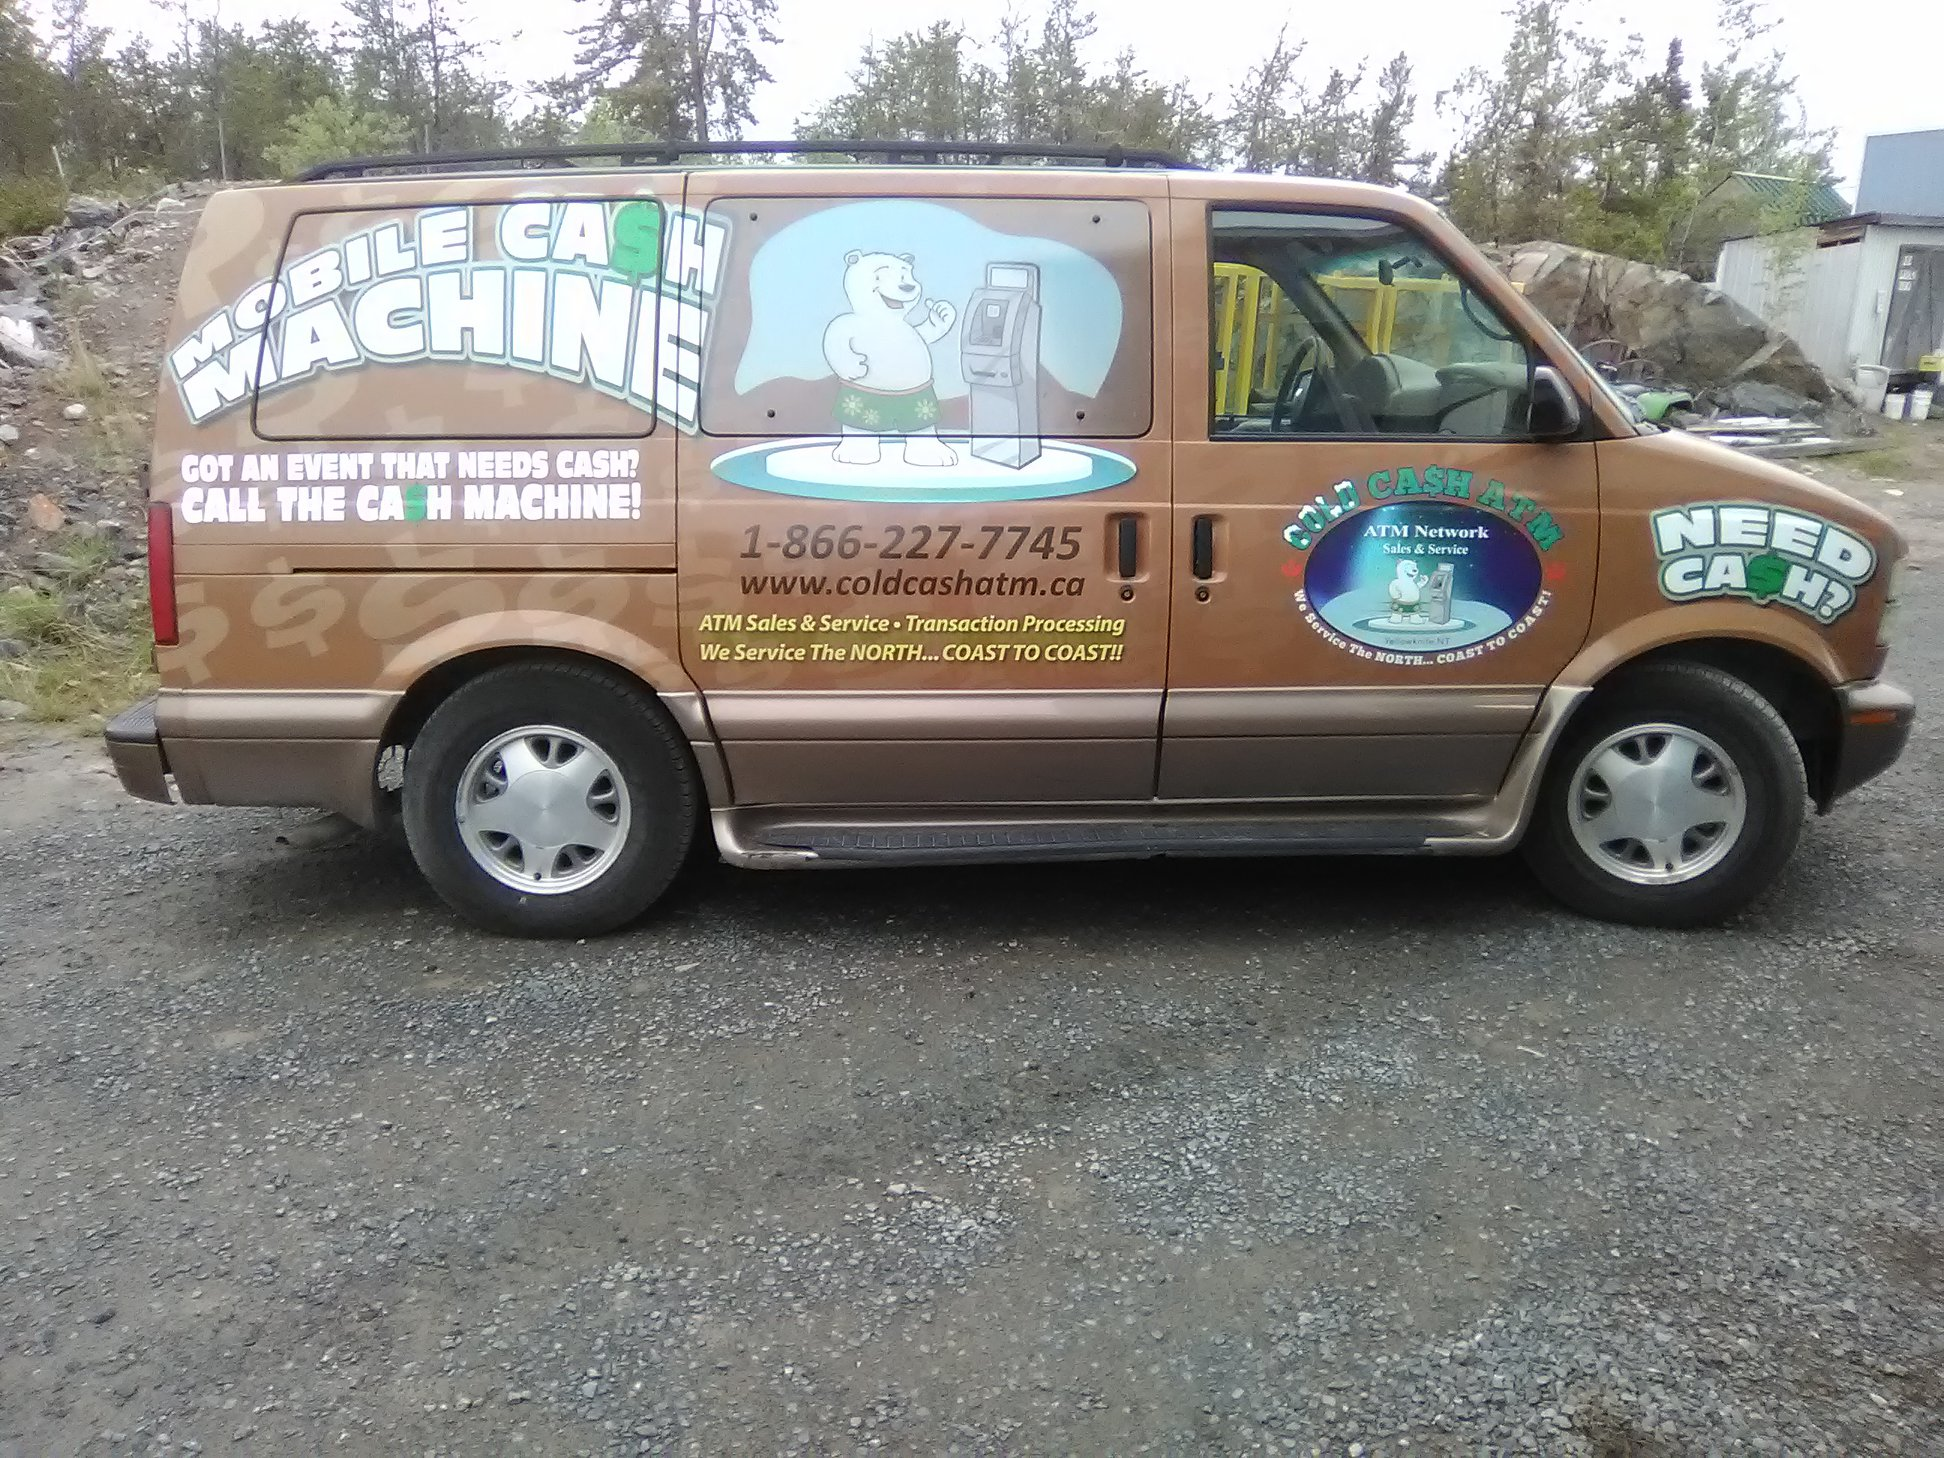 Vehicle Decal Wrap for Cold Cash ATM Van